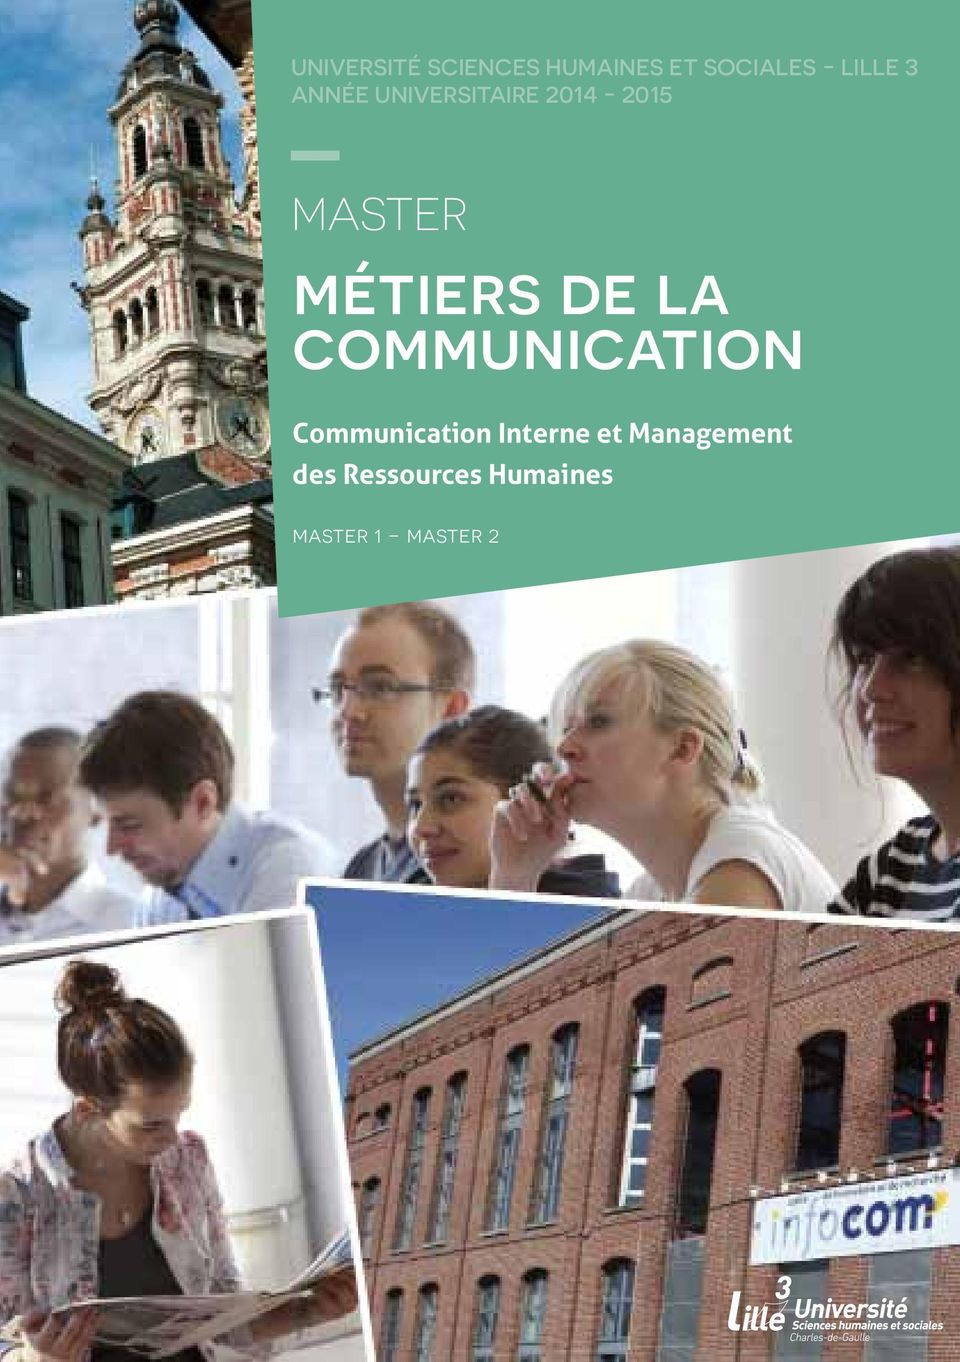 de la communication Communication Interne et